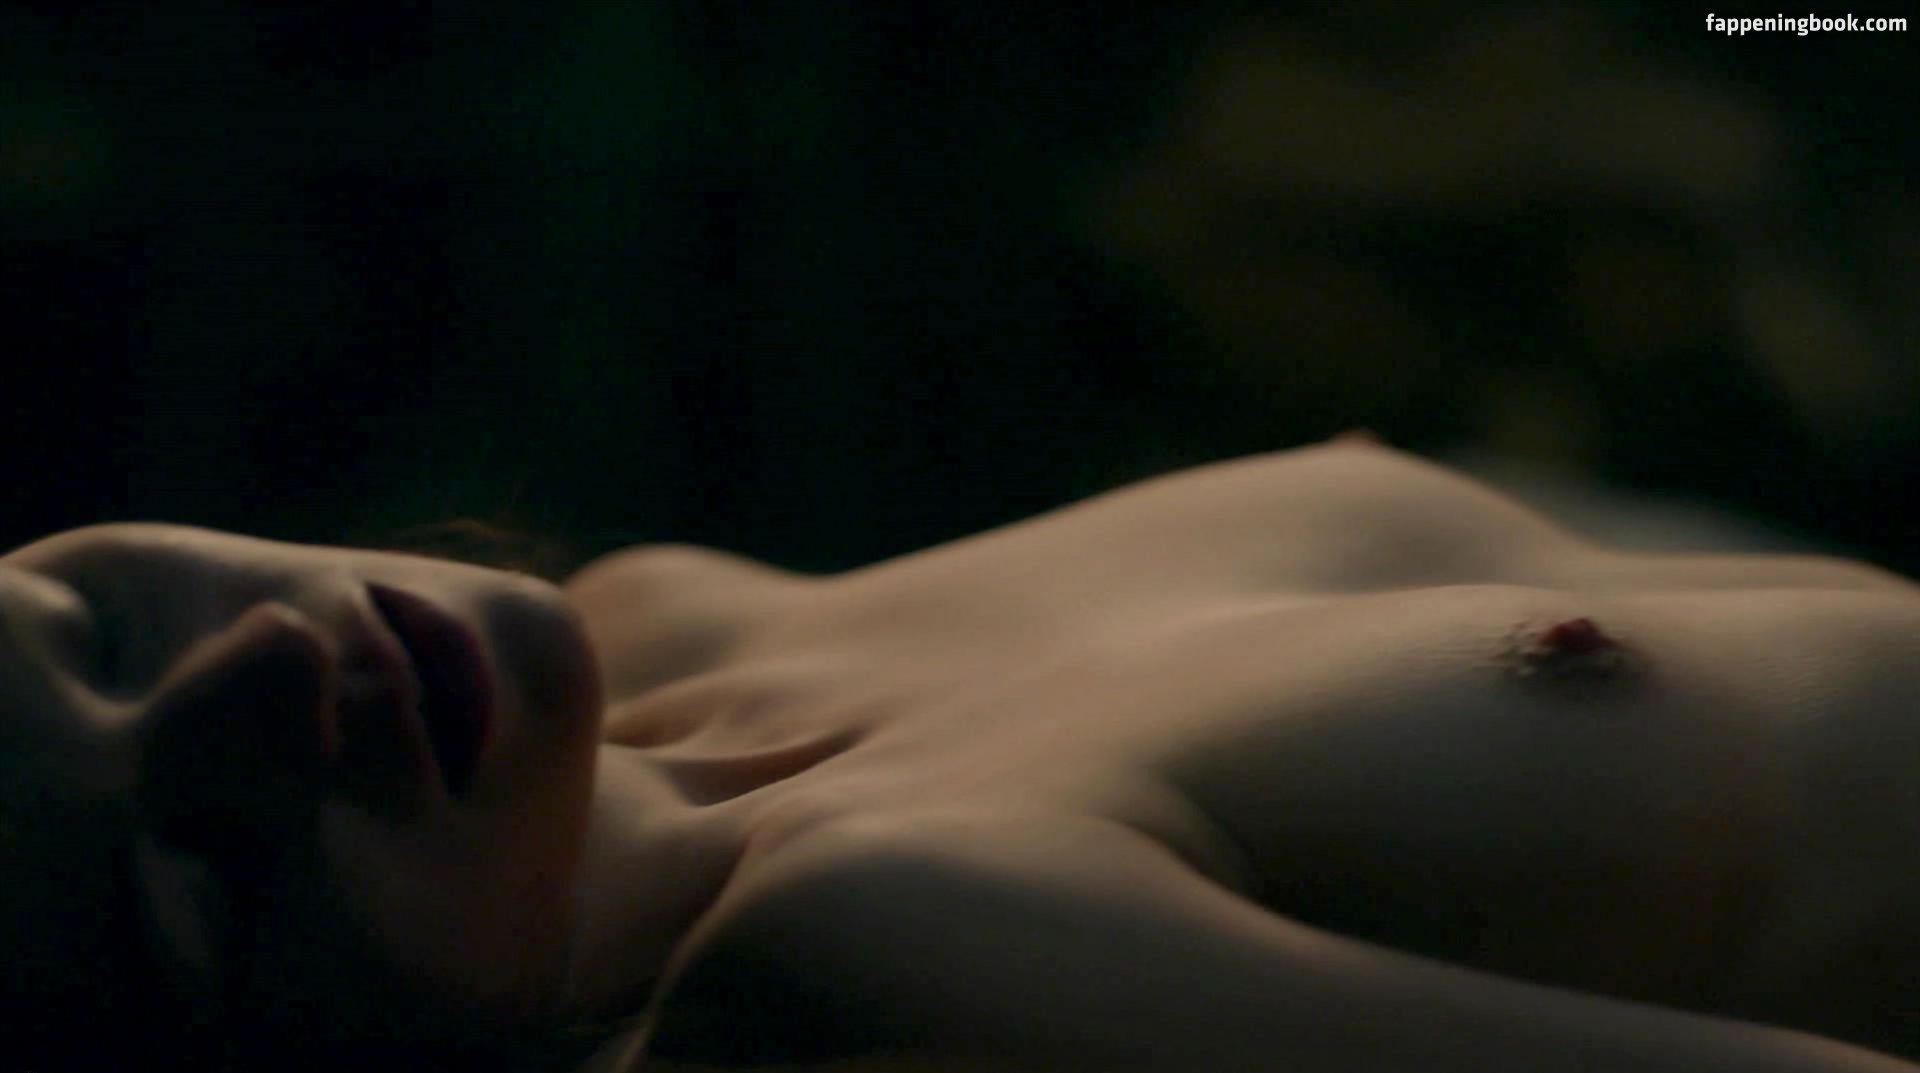 Sophie Skelton Nude, Sexy, The Fappening, Uncensored - Photo ...